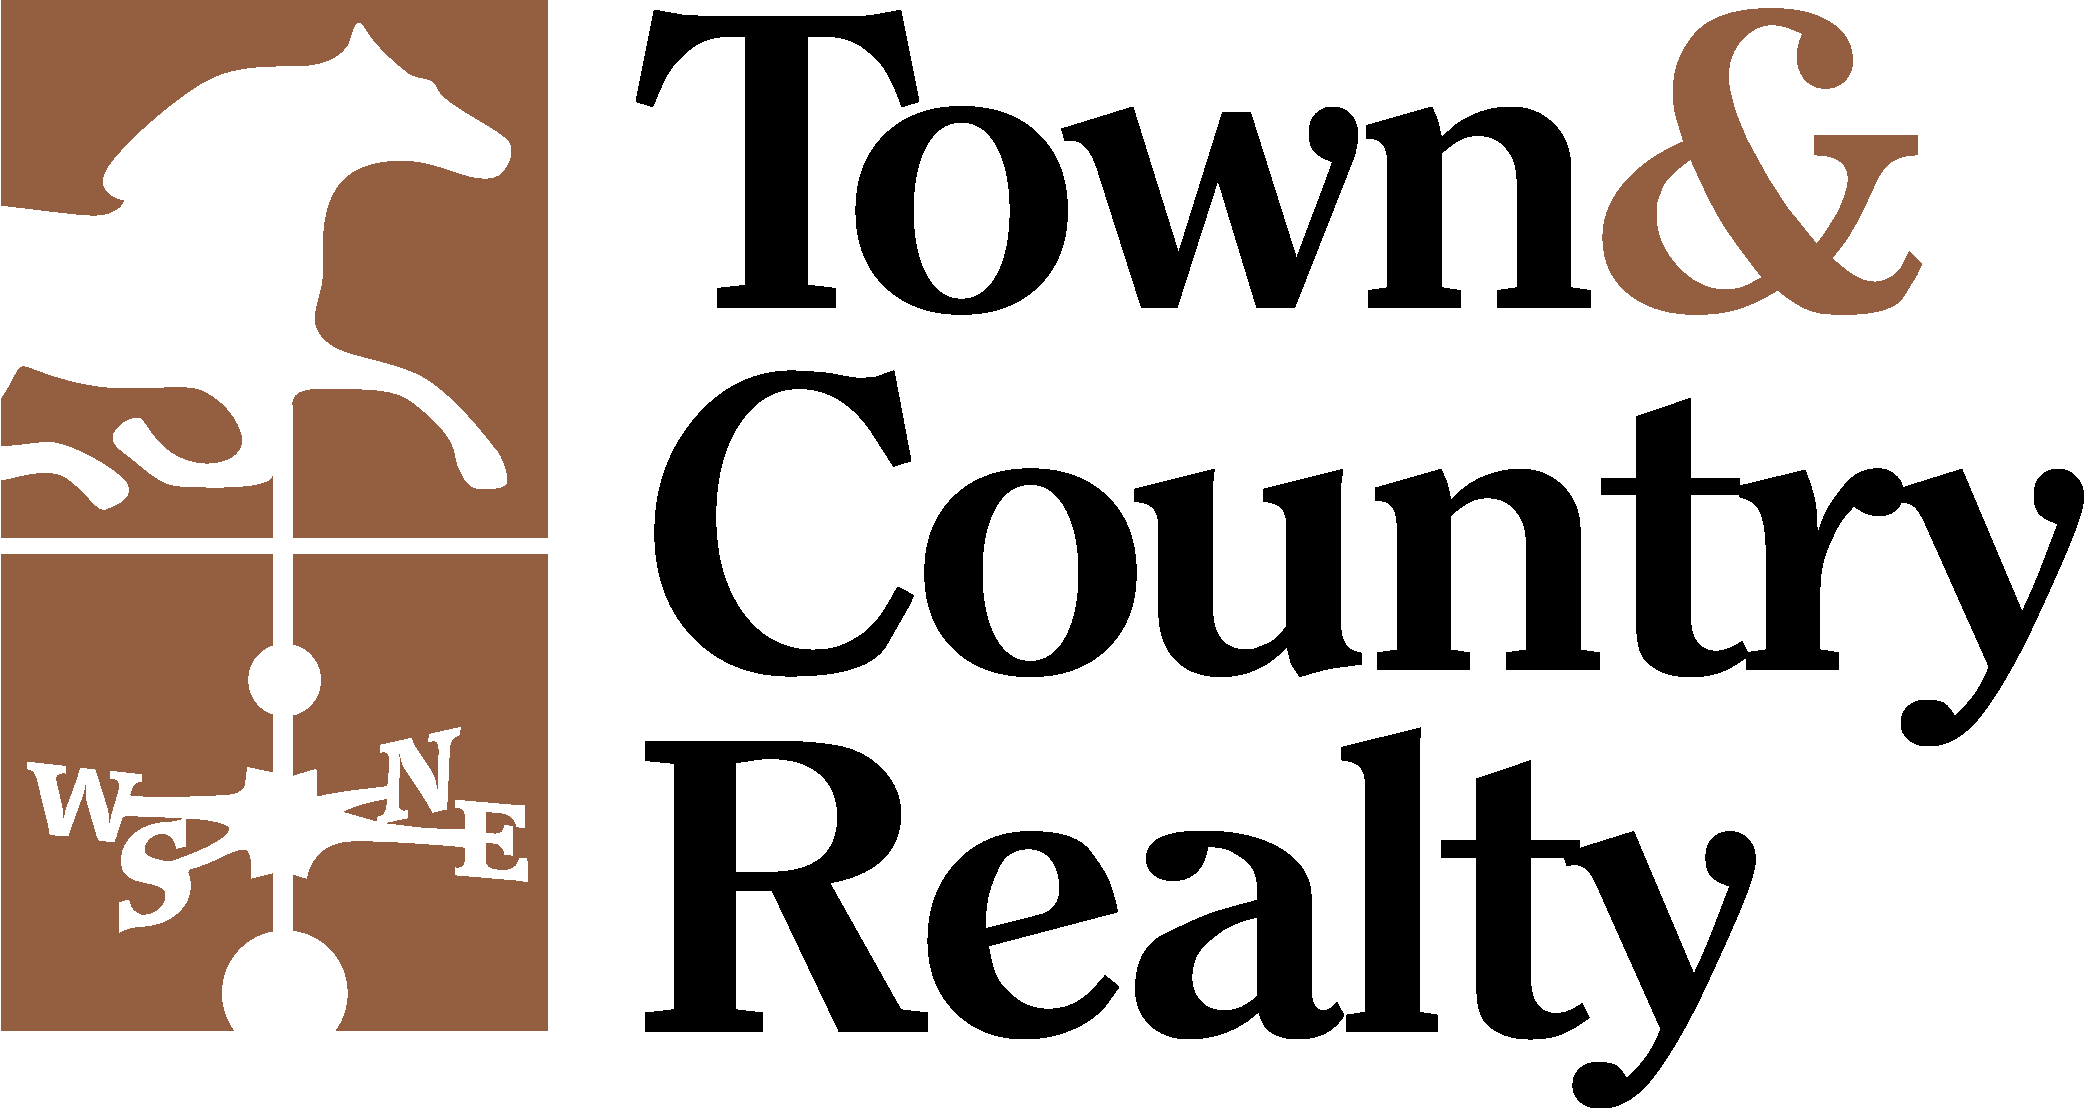 Town & Country Realty Inc. logo